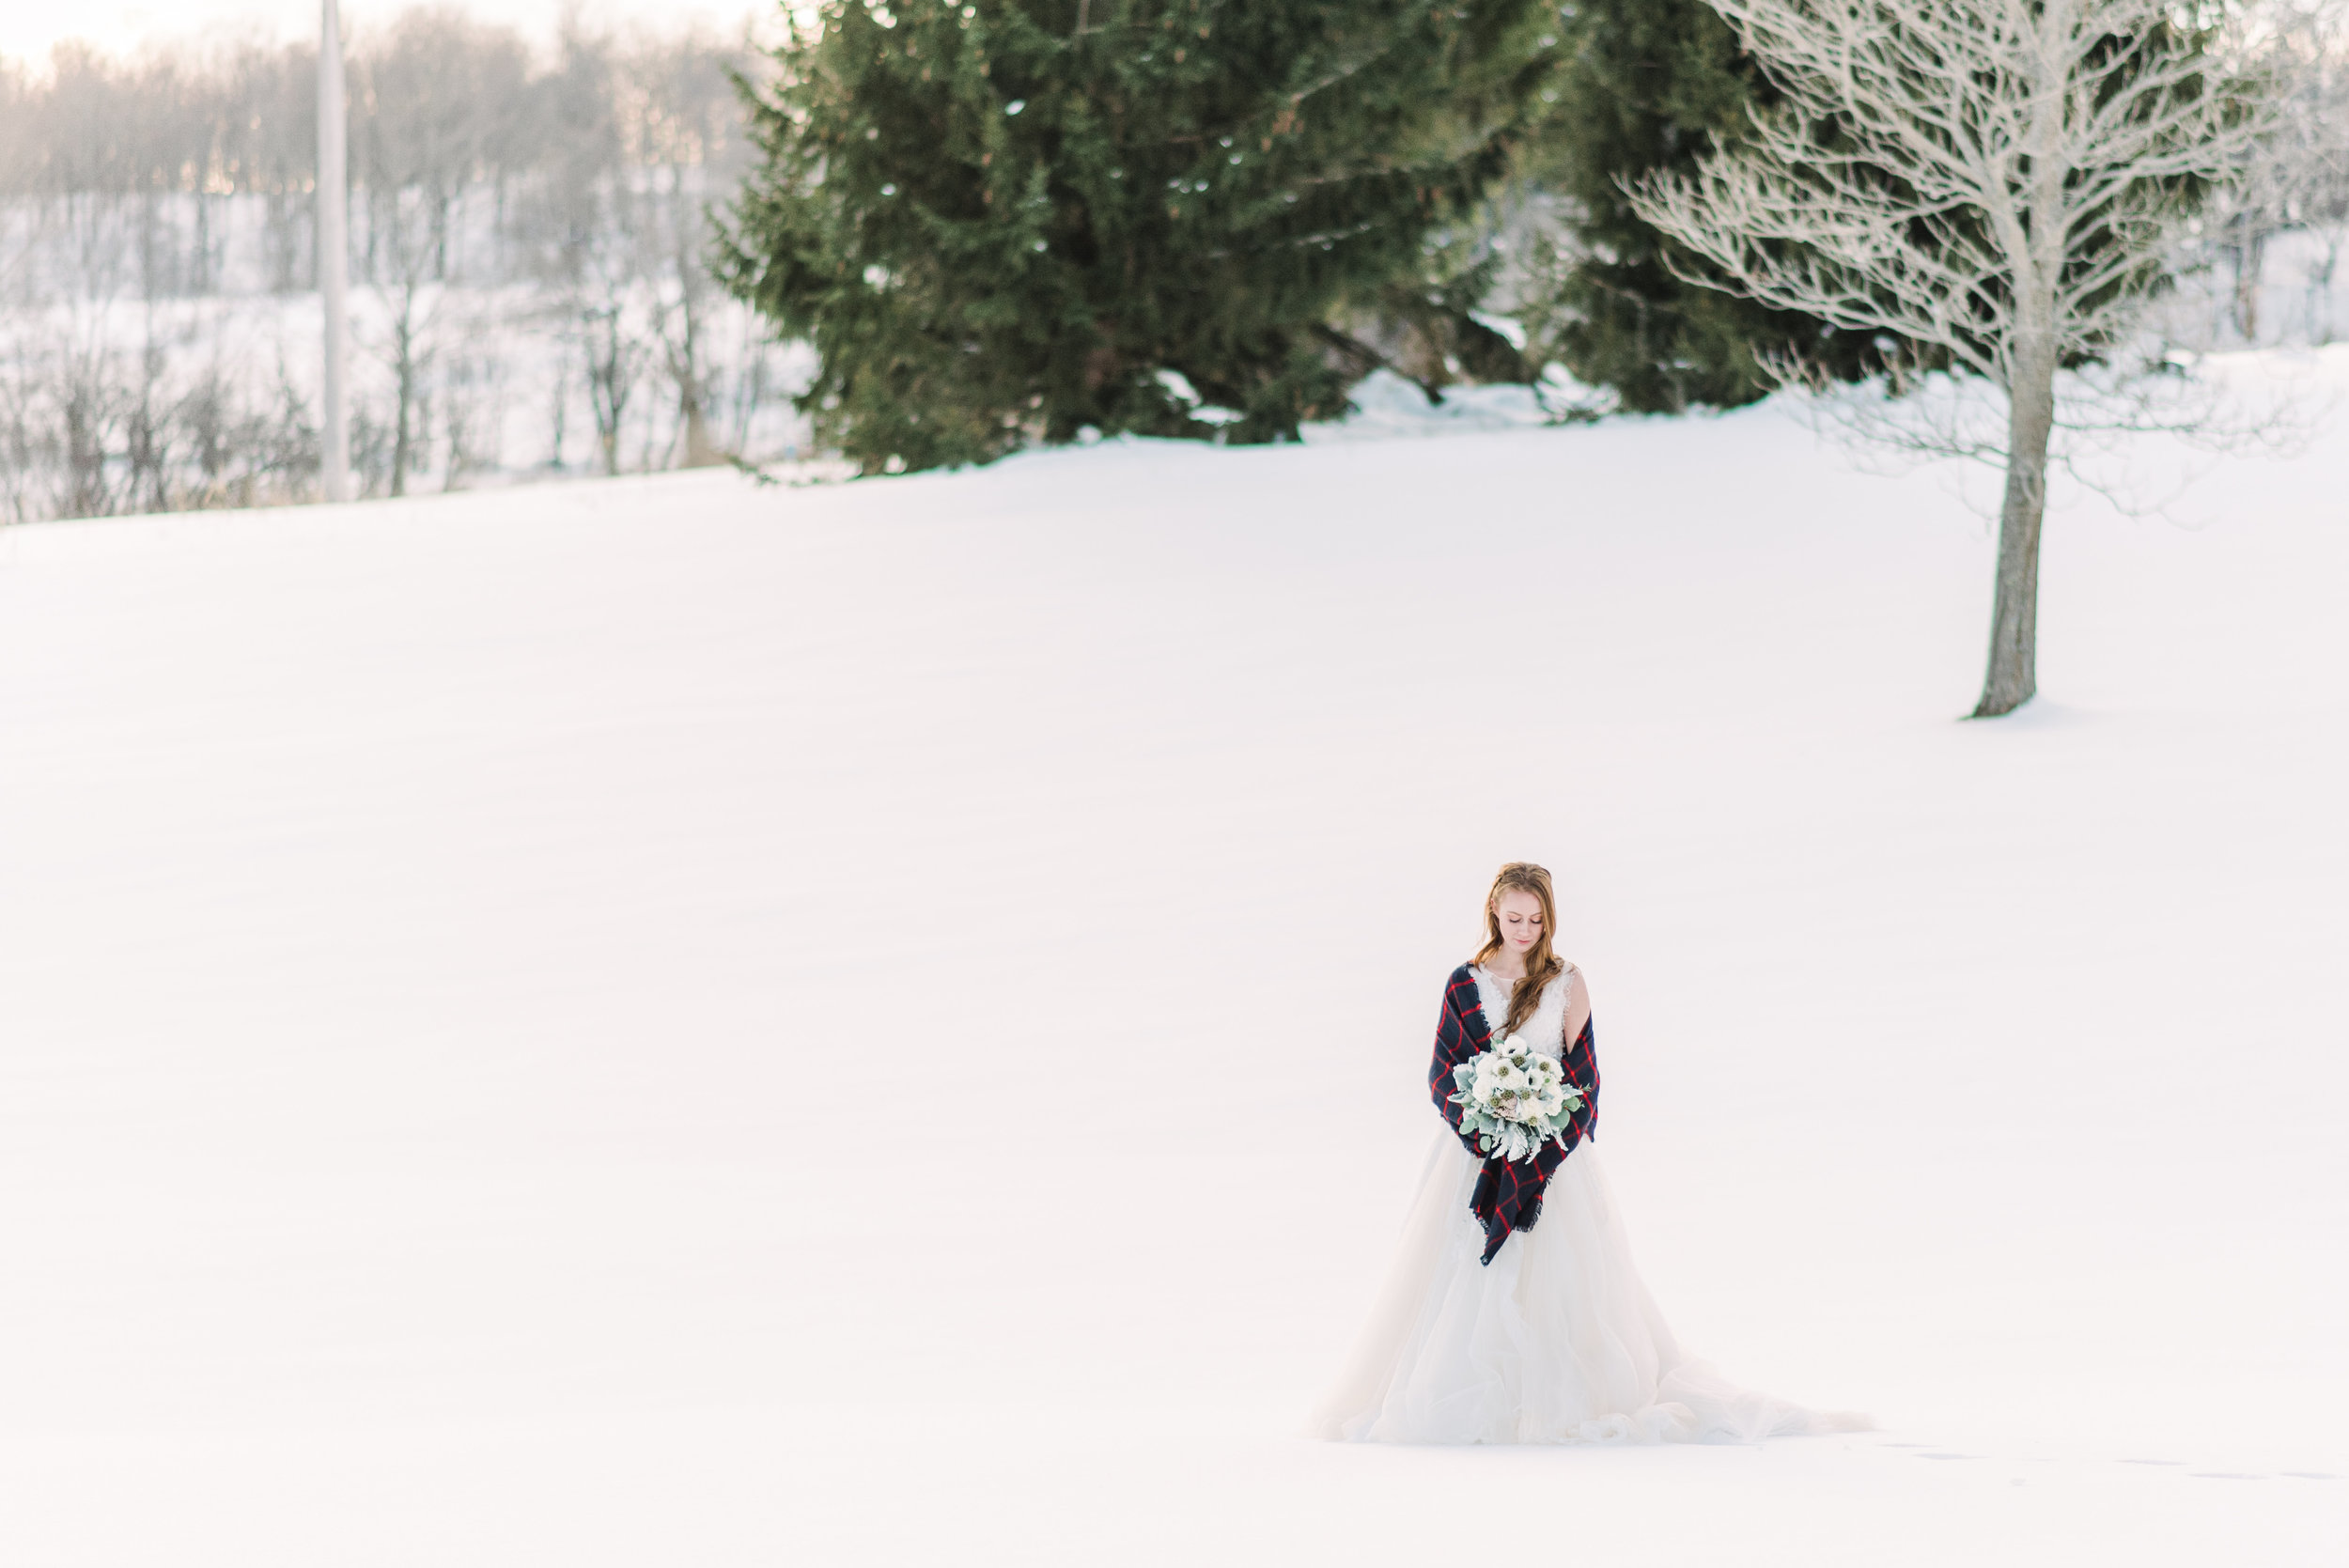 unique wedding photography winter scenery wedding photo winter bouquet simple clean wedding dress under $1000